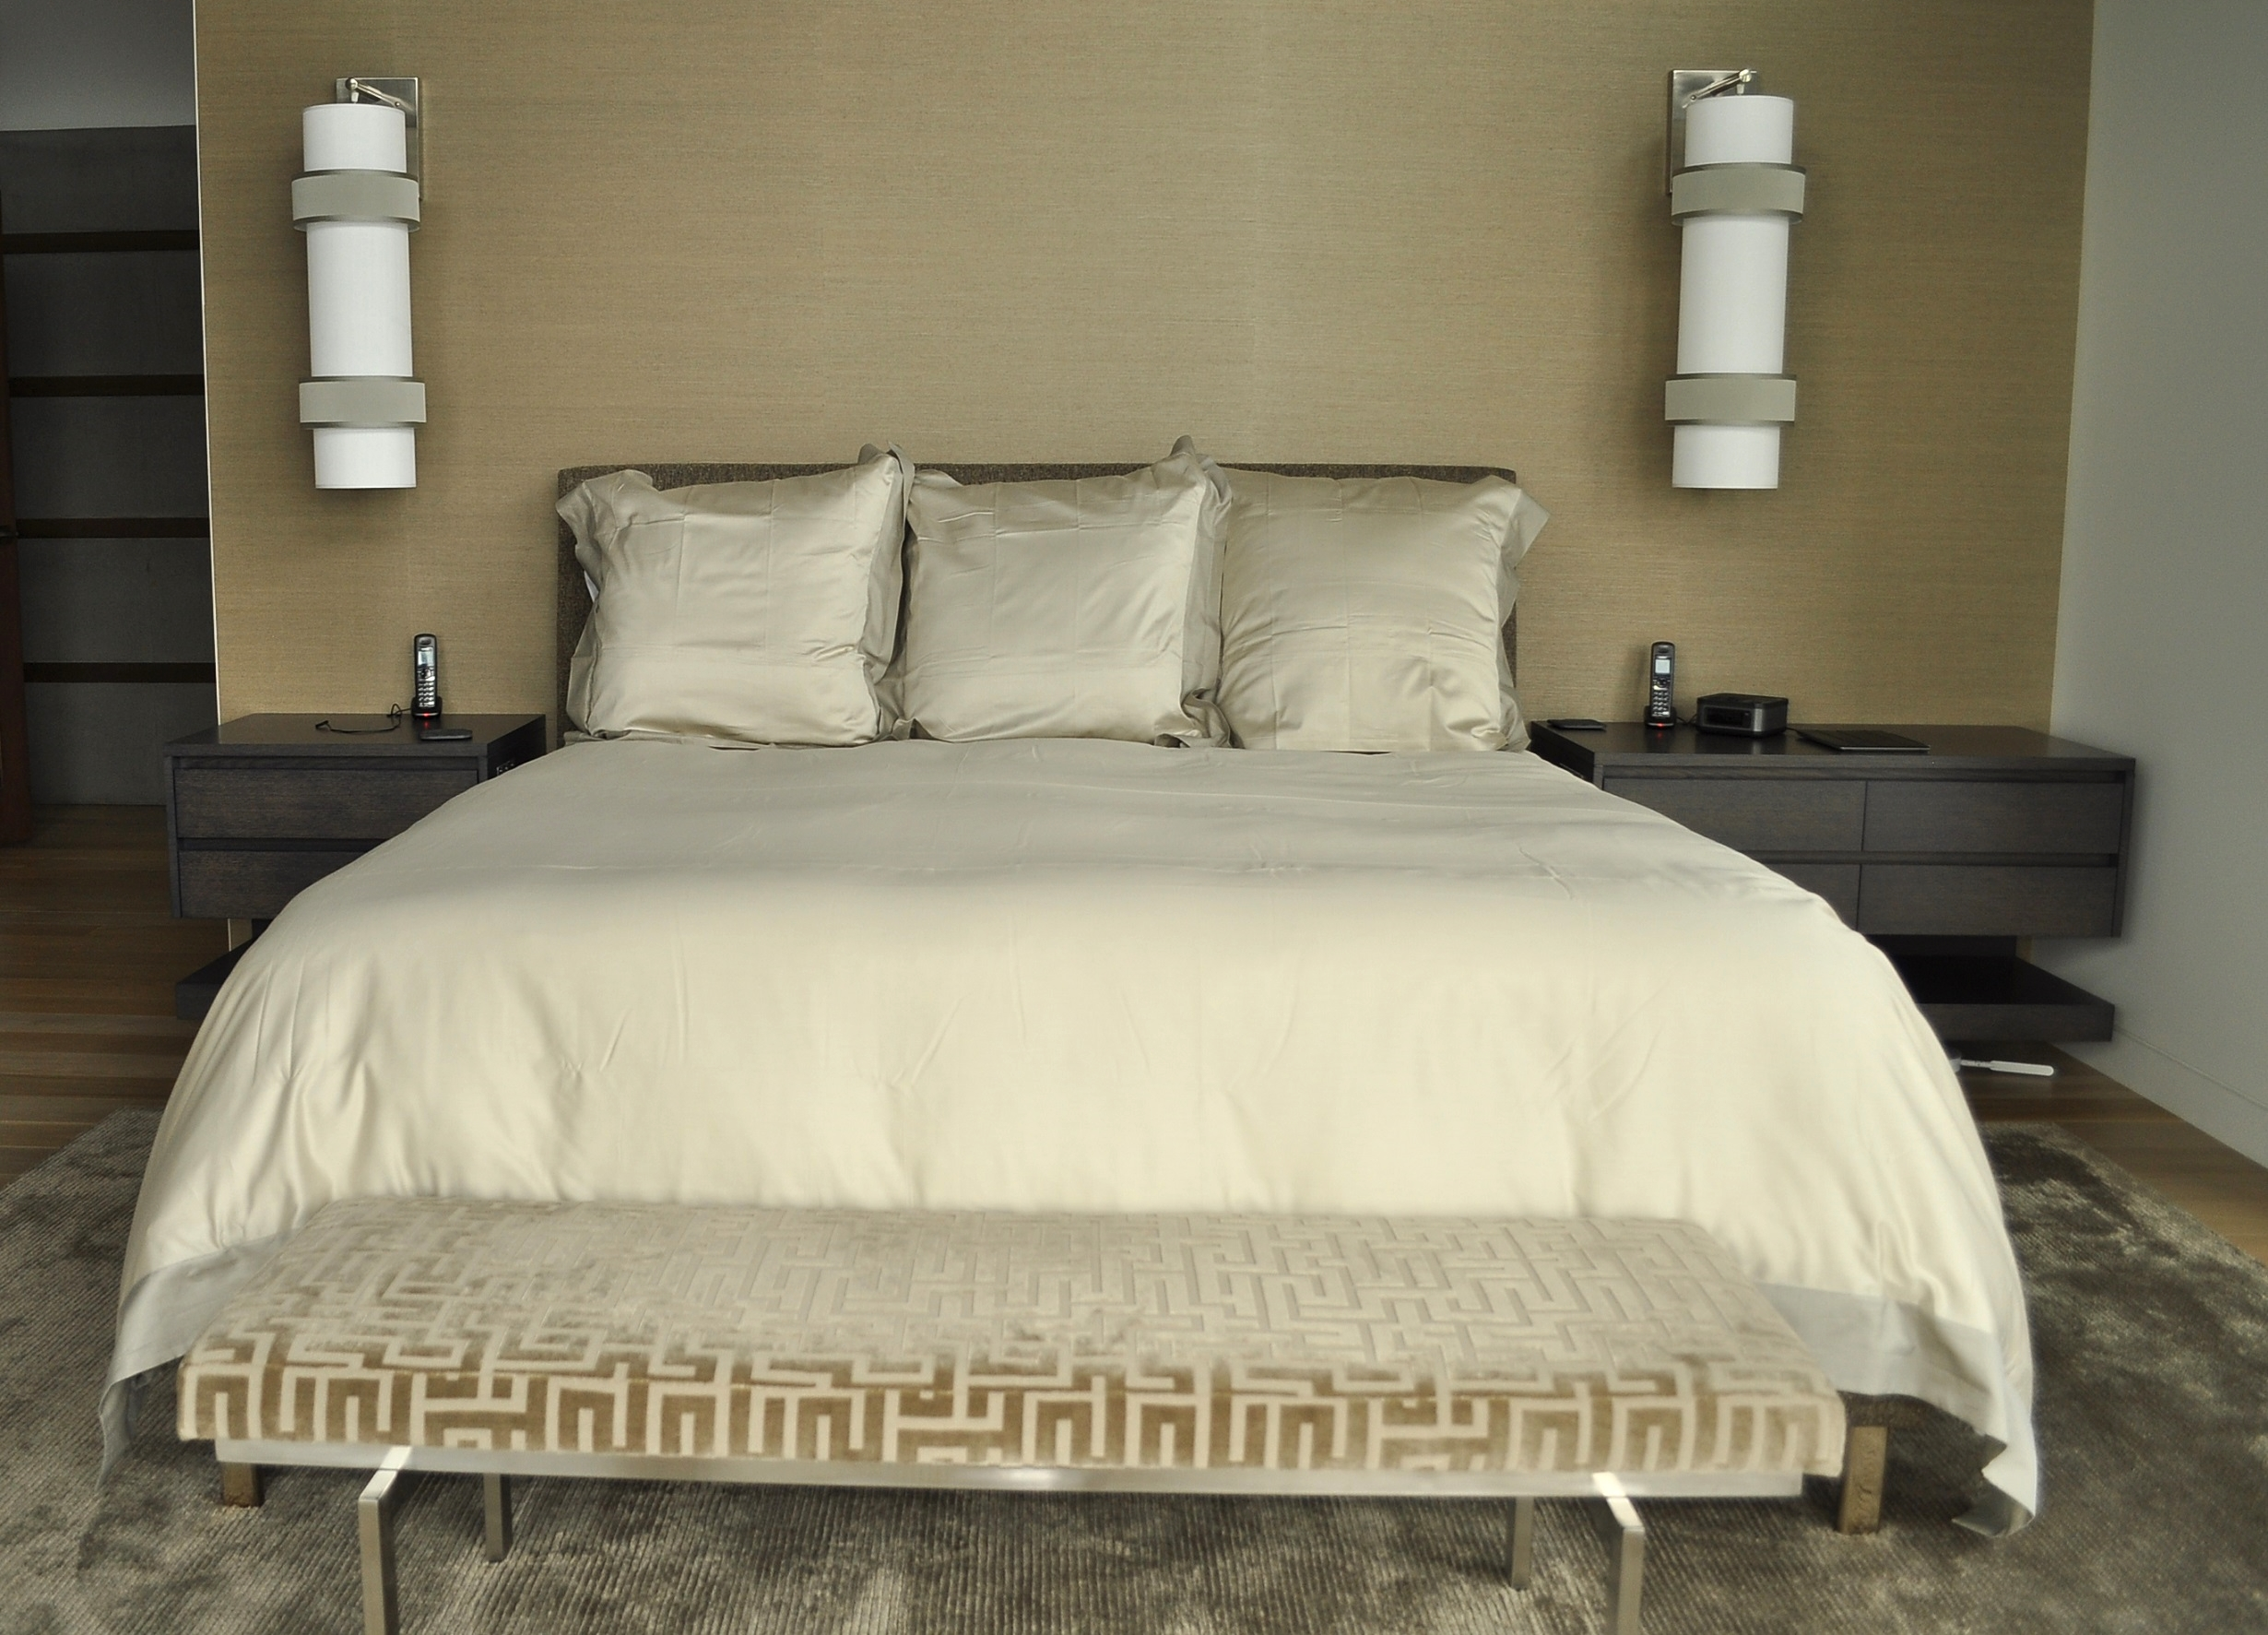 white-oak-queen-platform-bed-and-wall-mounted-nightstands.JPG